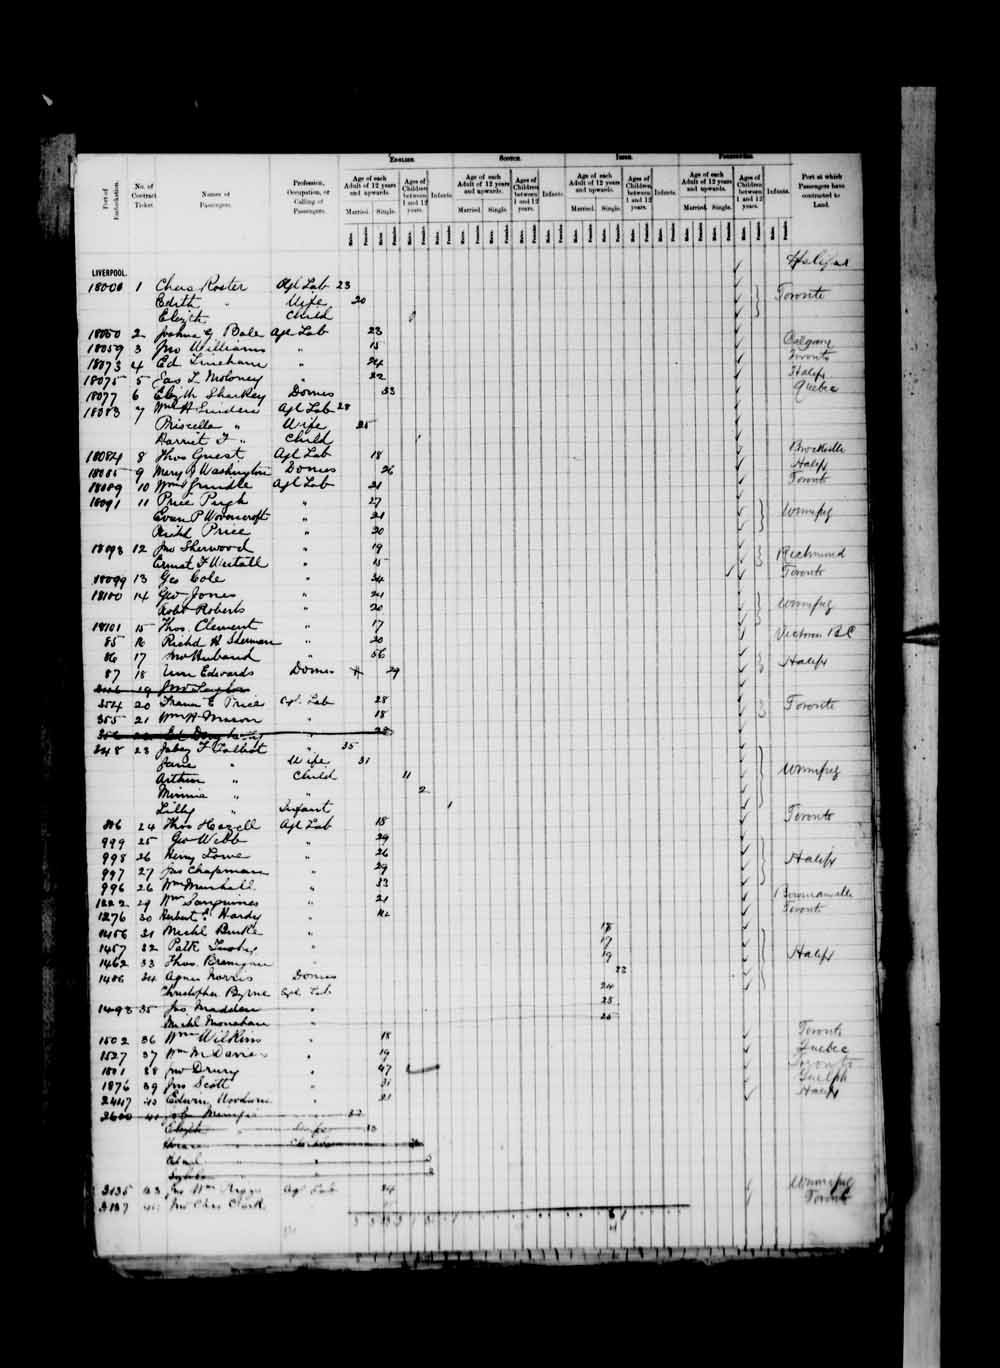 Digitized page of Passenger Lists for Image No.: e003674947